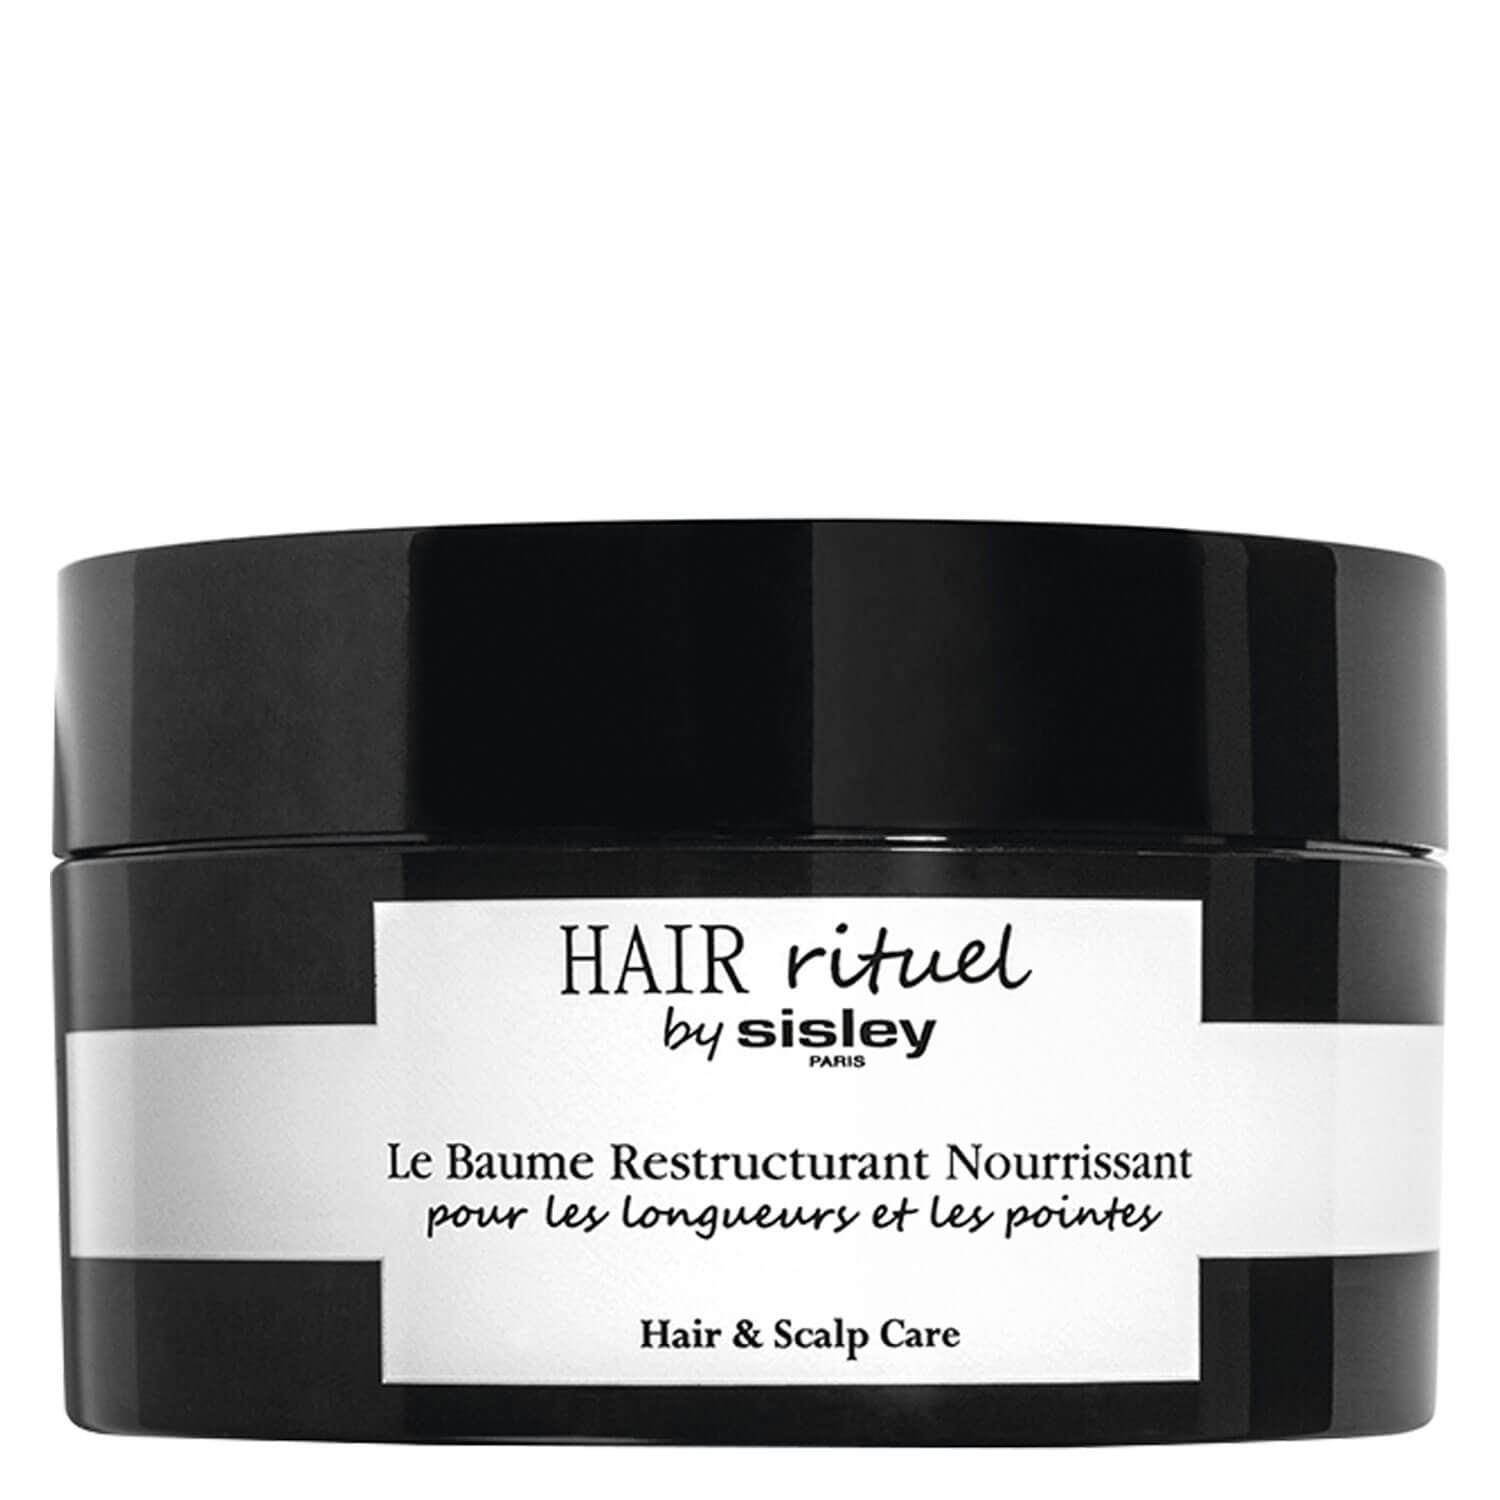 Hair Rituel by Sisley - Le Baume Restructurant Nourrissant